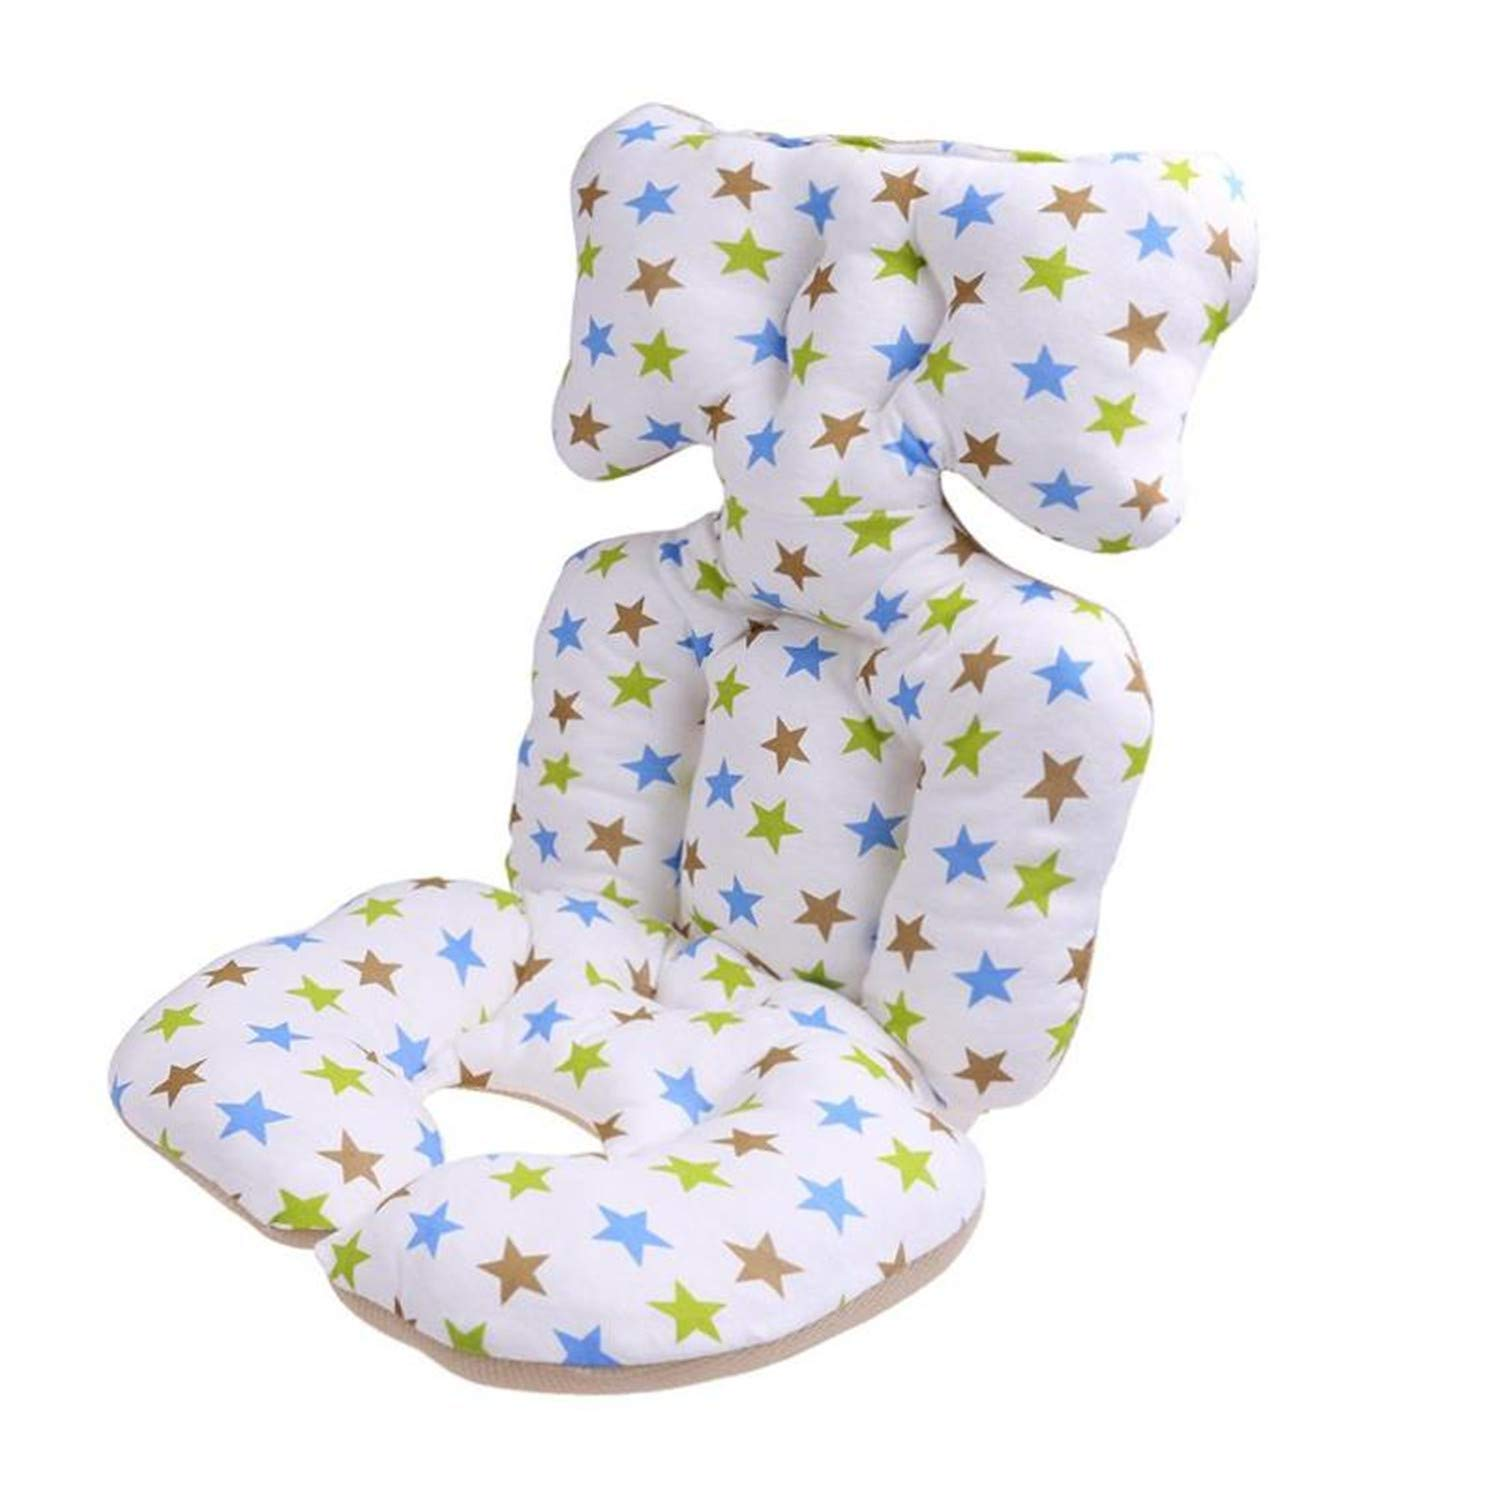 Baby Printed Stroller Pad Seat Warm Cushion Pad Mattresses Pillow Cover Child Carriage Cart Thicken Pad Chair Cushion